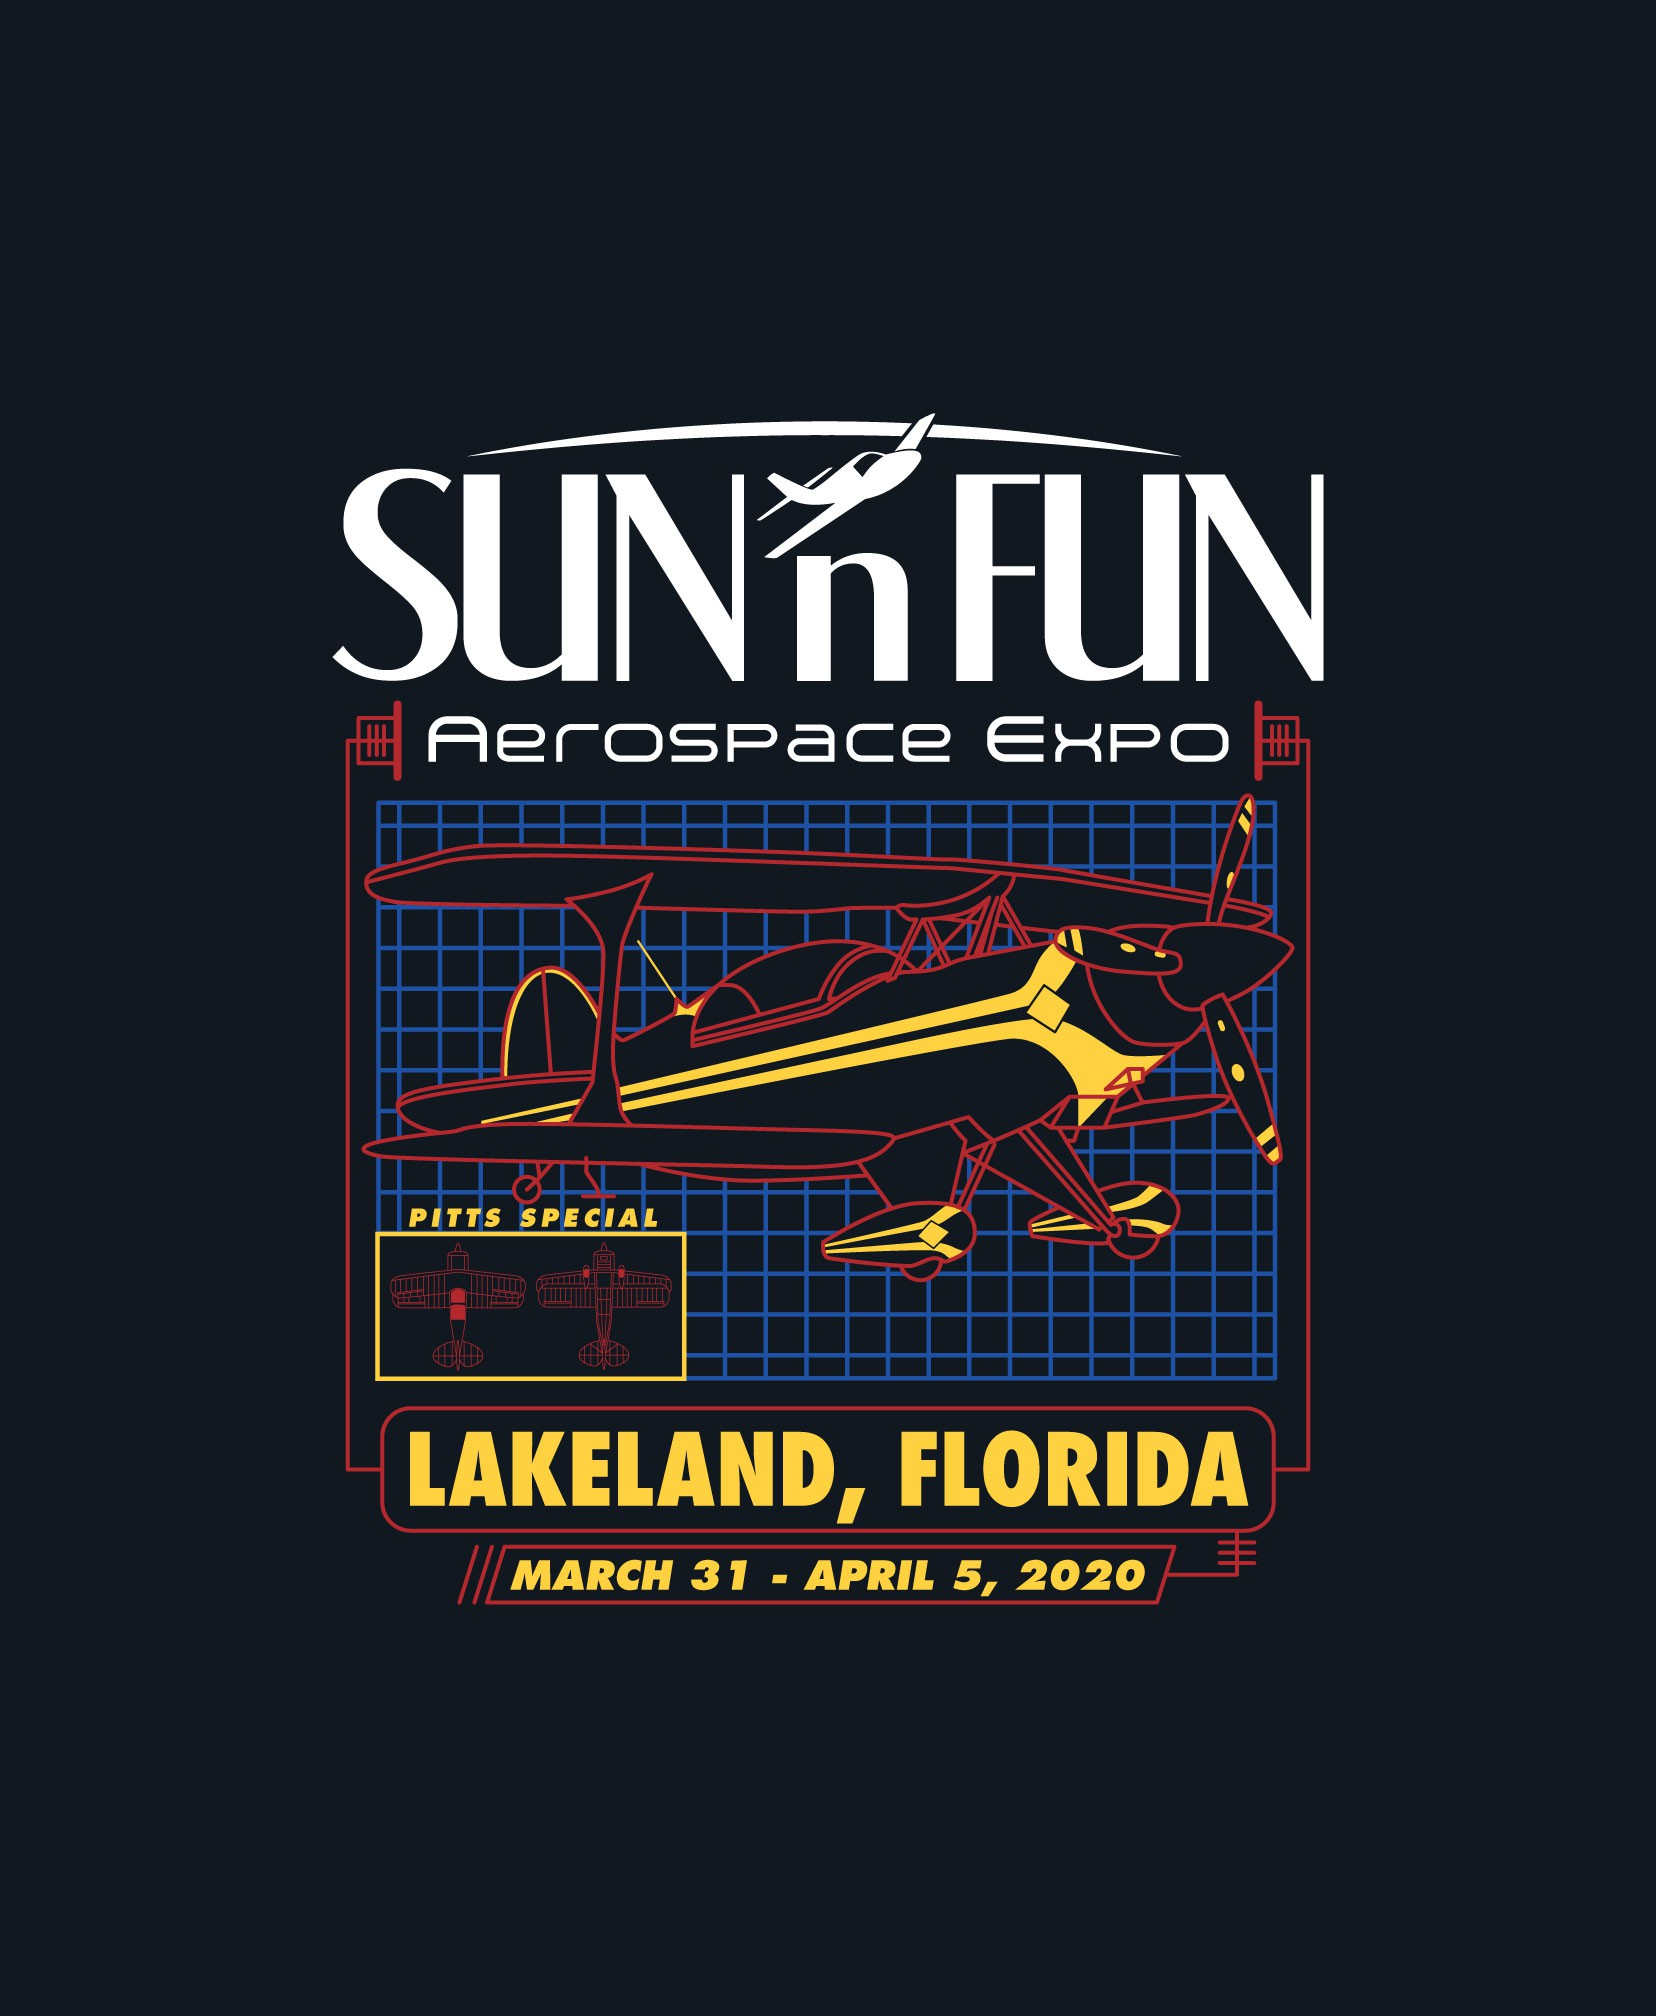 Major Airshow Event T-Shirt with Mass Appeal